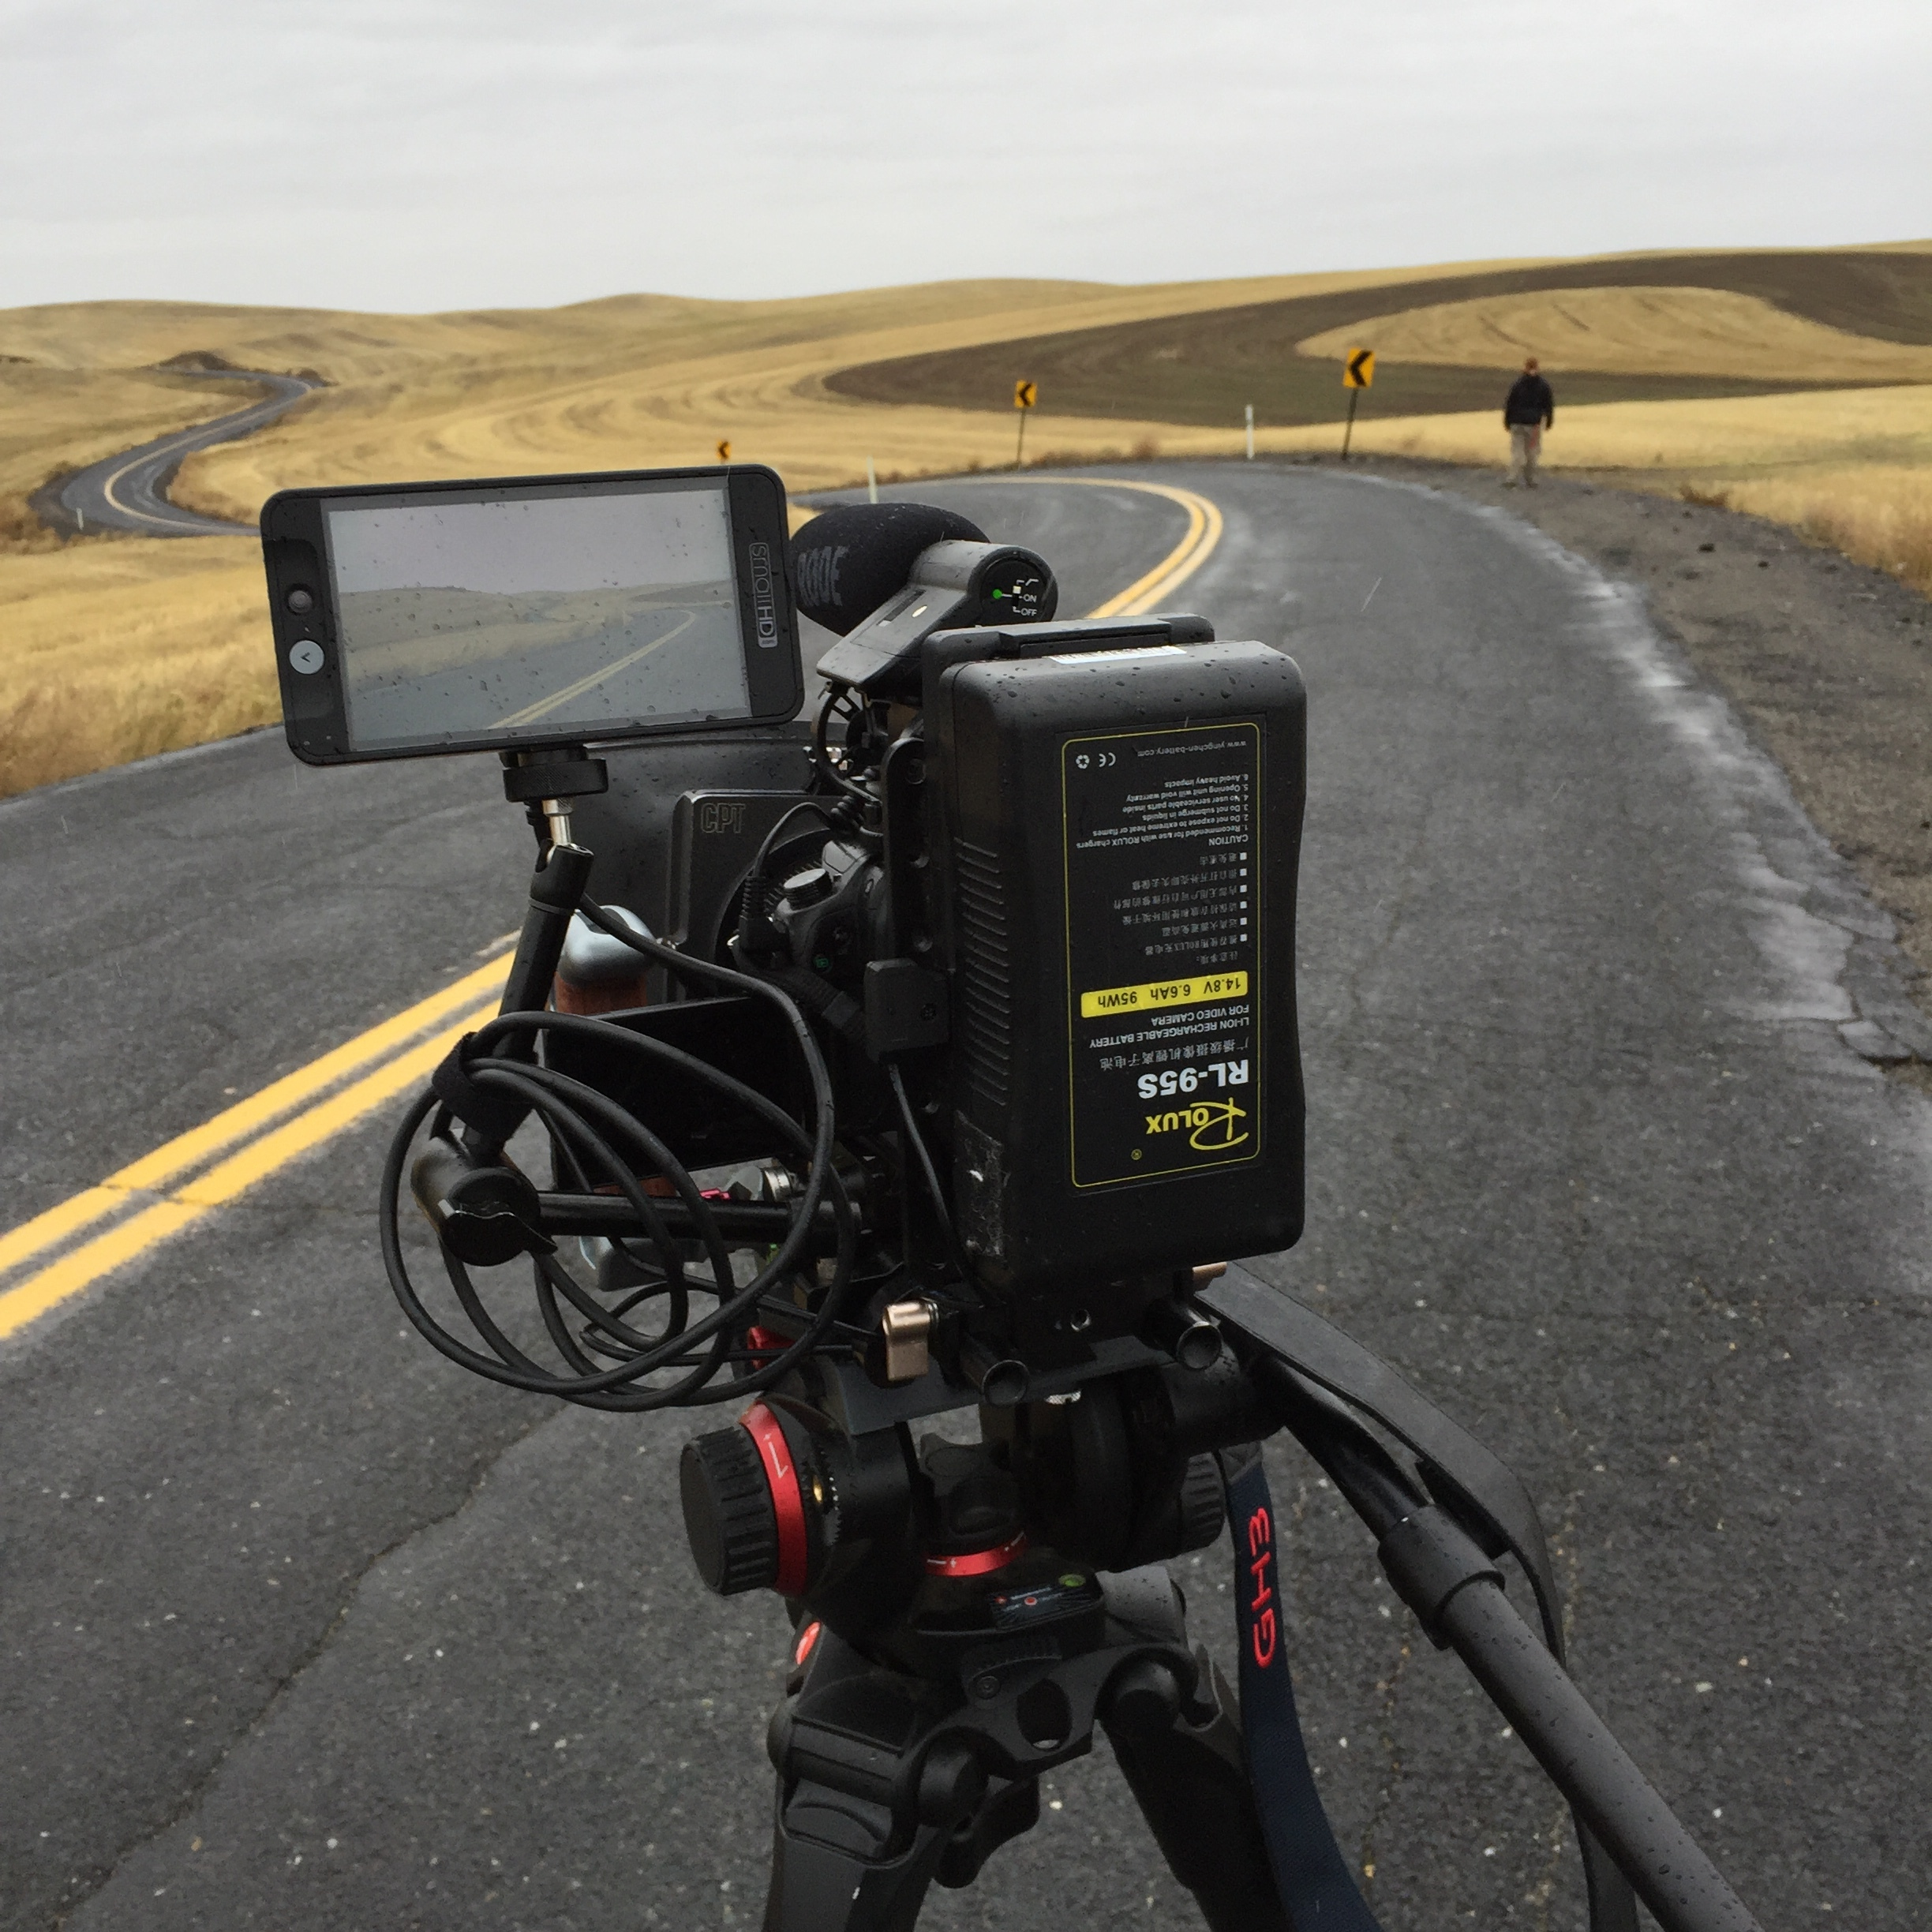 The camera rig, Evan, and backroads of Cheney Washington.